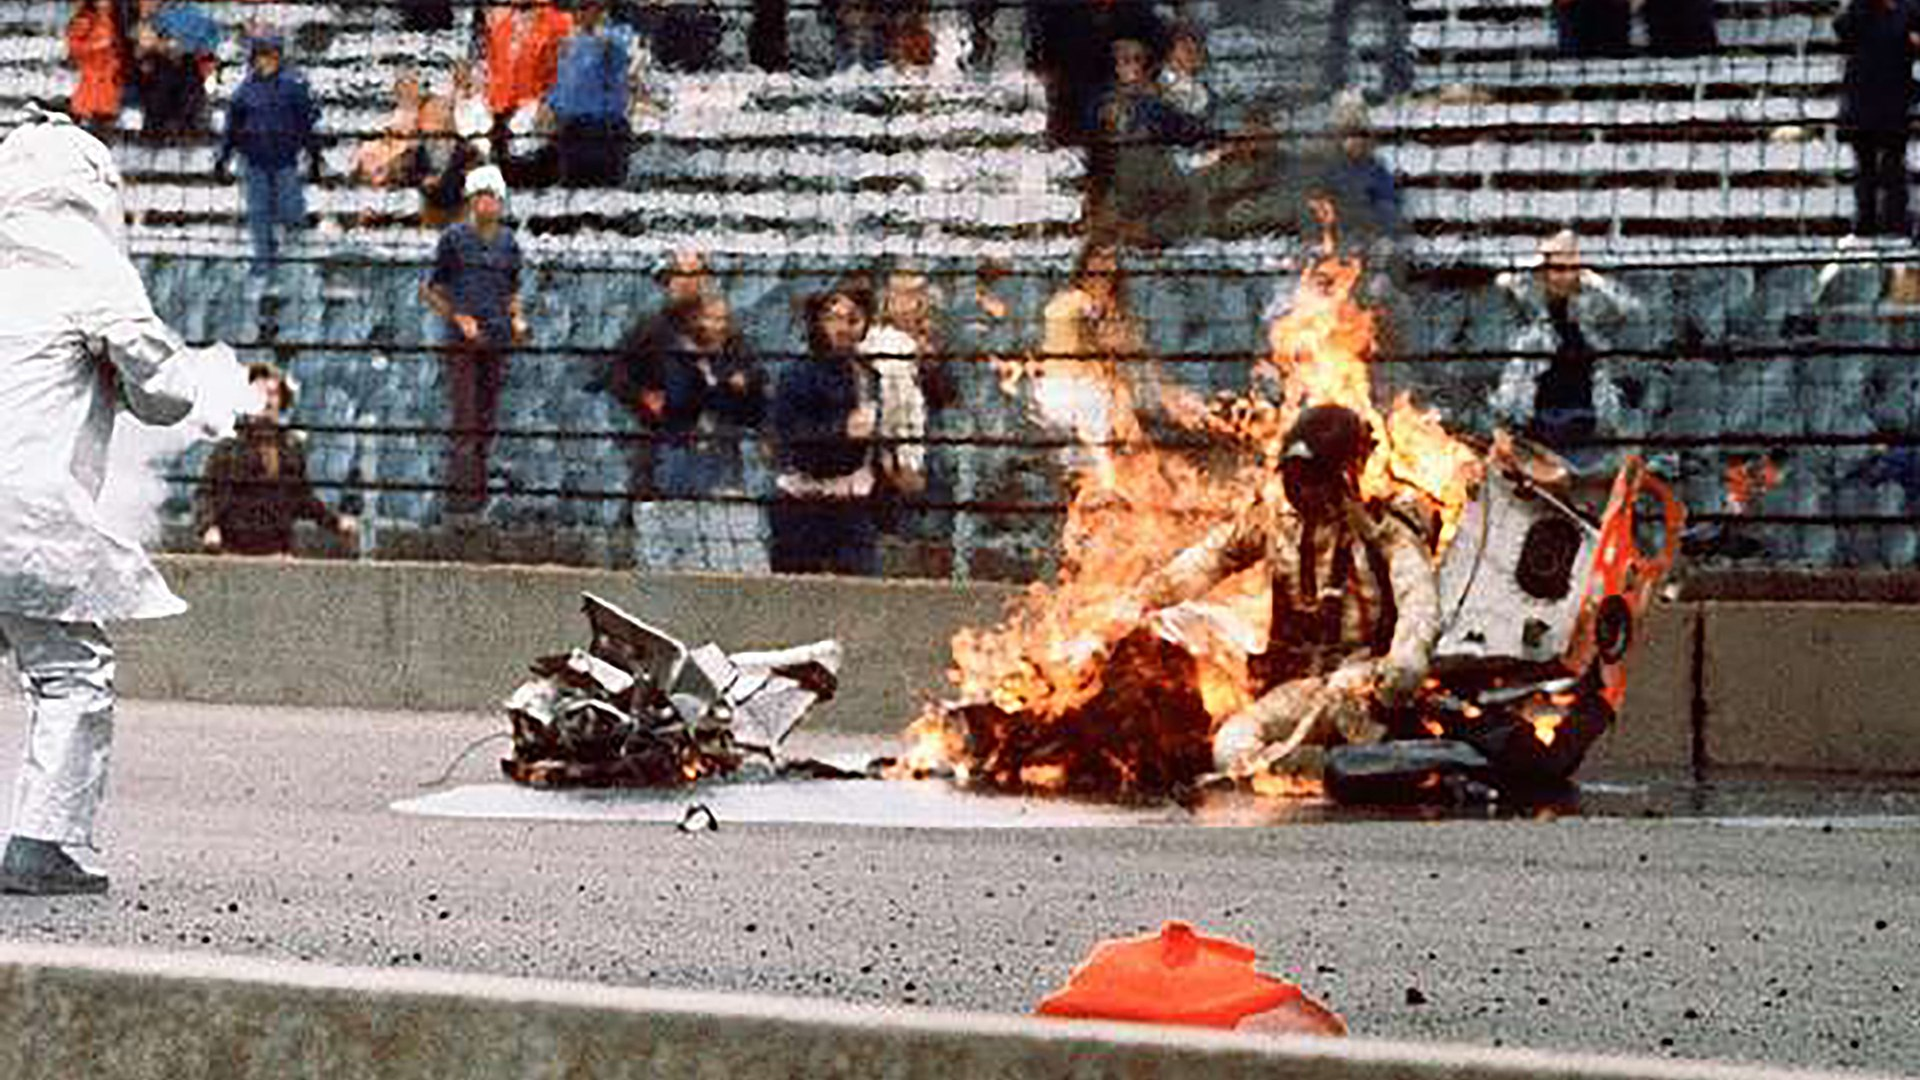 Swede Savage fatal crash at Indy 500 (30 May 1973) ALL ANGLES & PICTURES